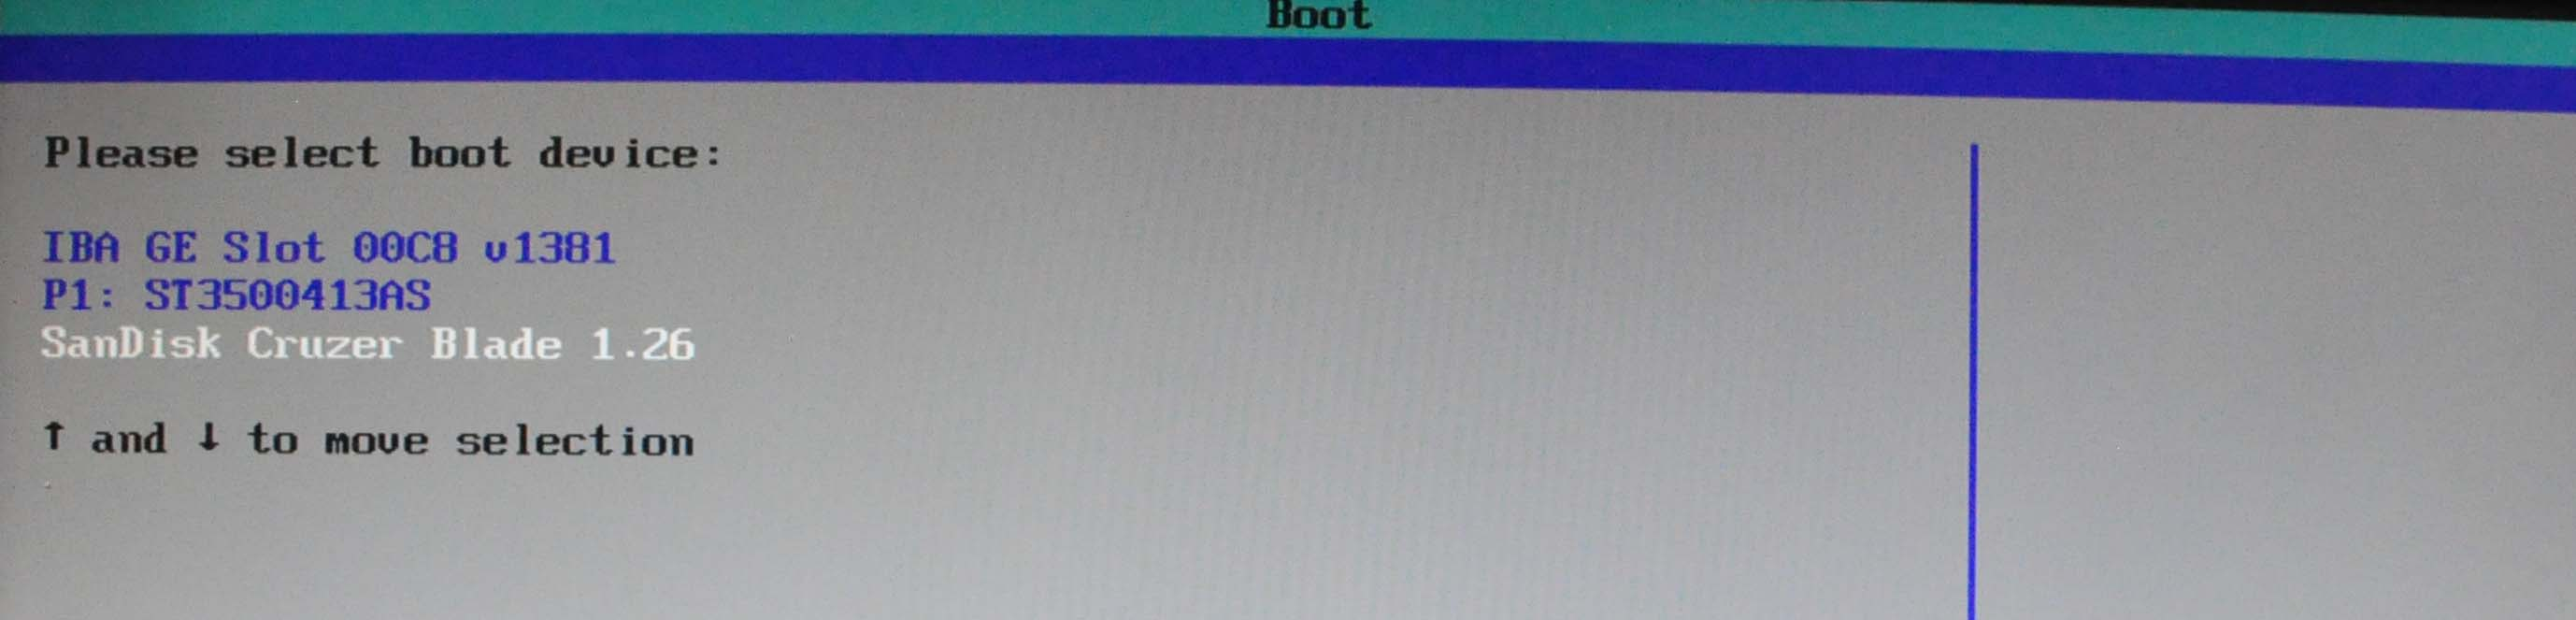 Boot Selection